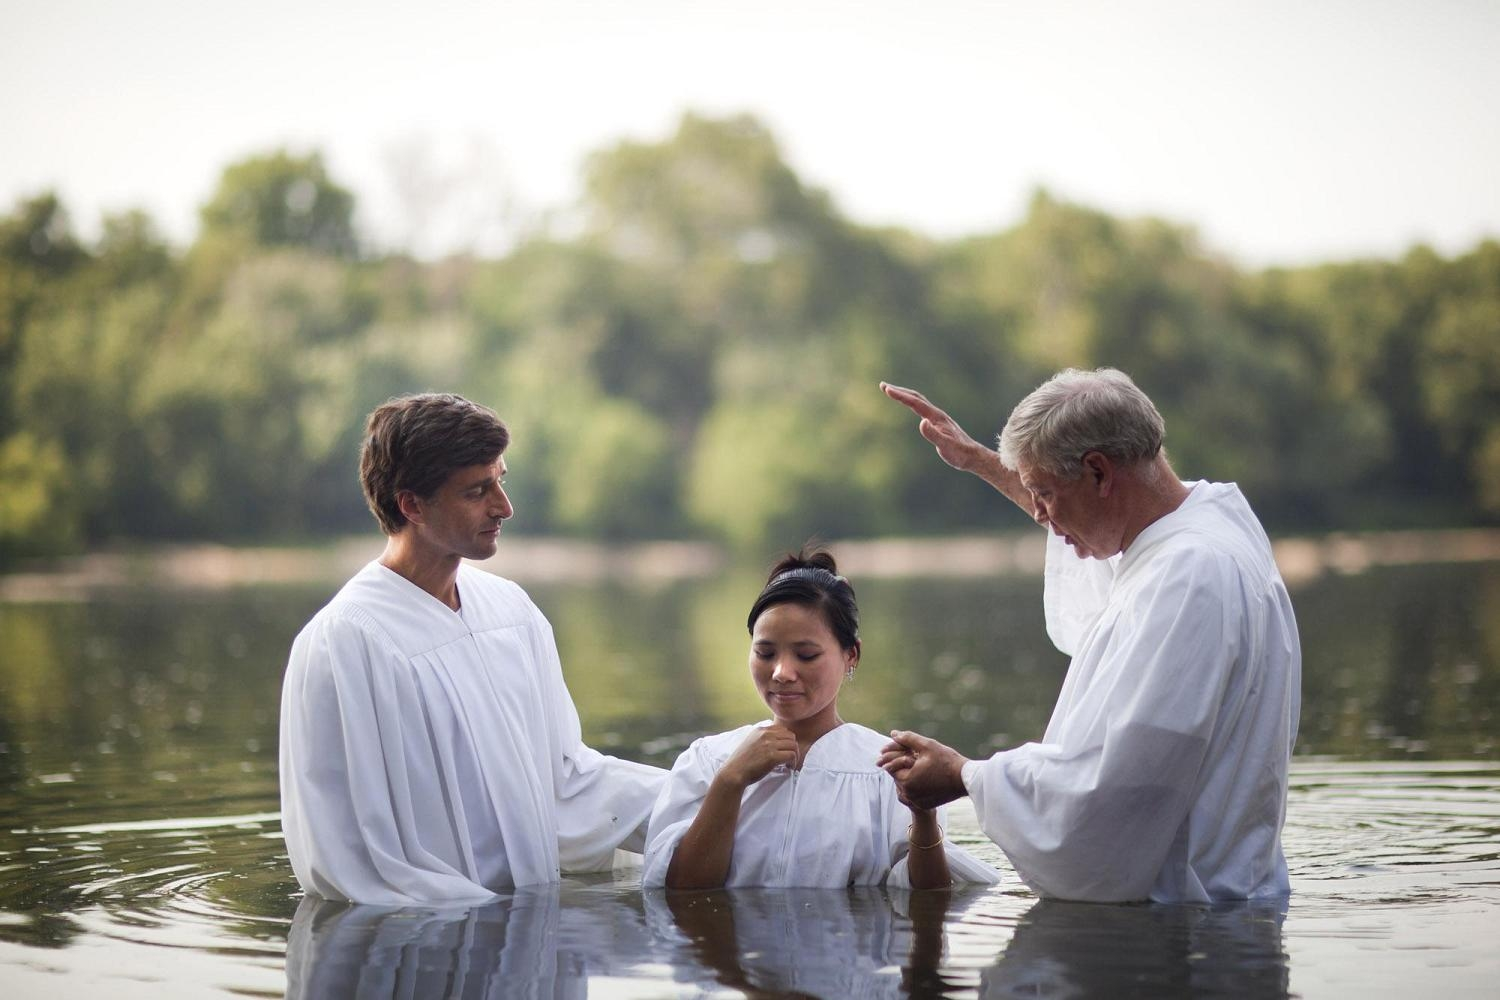 baptism essay photo It is by the royal priesthood of baptism, that the gathered assembly share in the embodiment of the risen christ and so, in the work of the liturgy (sc, 7) to that end, liturgists are encouraged to strive after noble beauty rather than sumptuous displays.